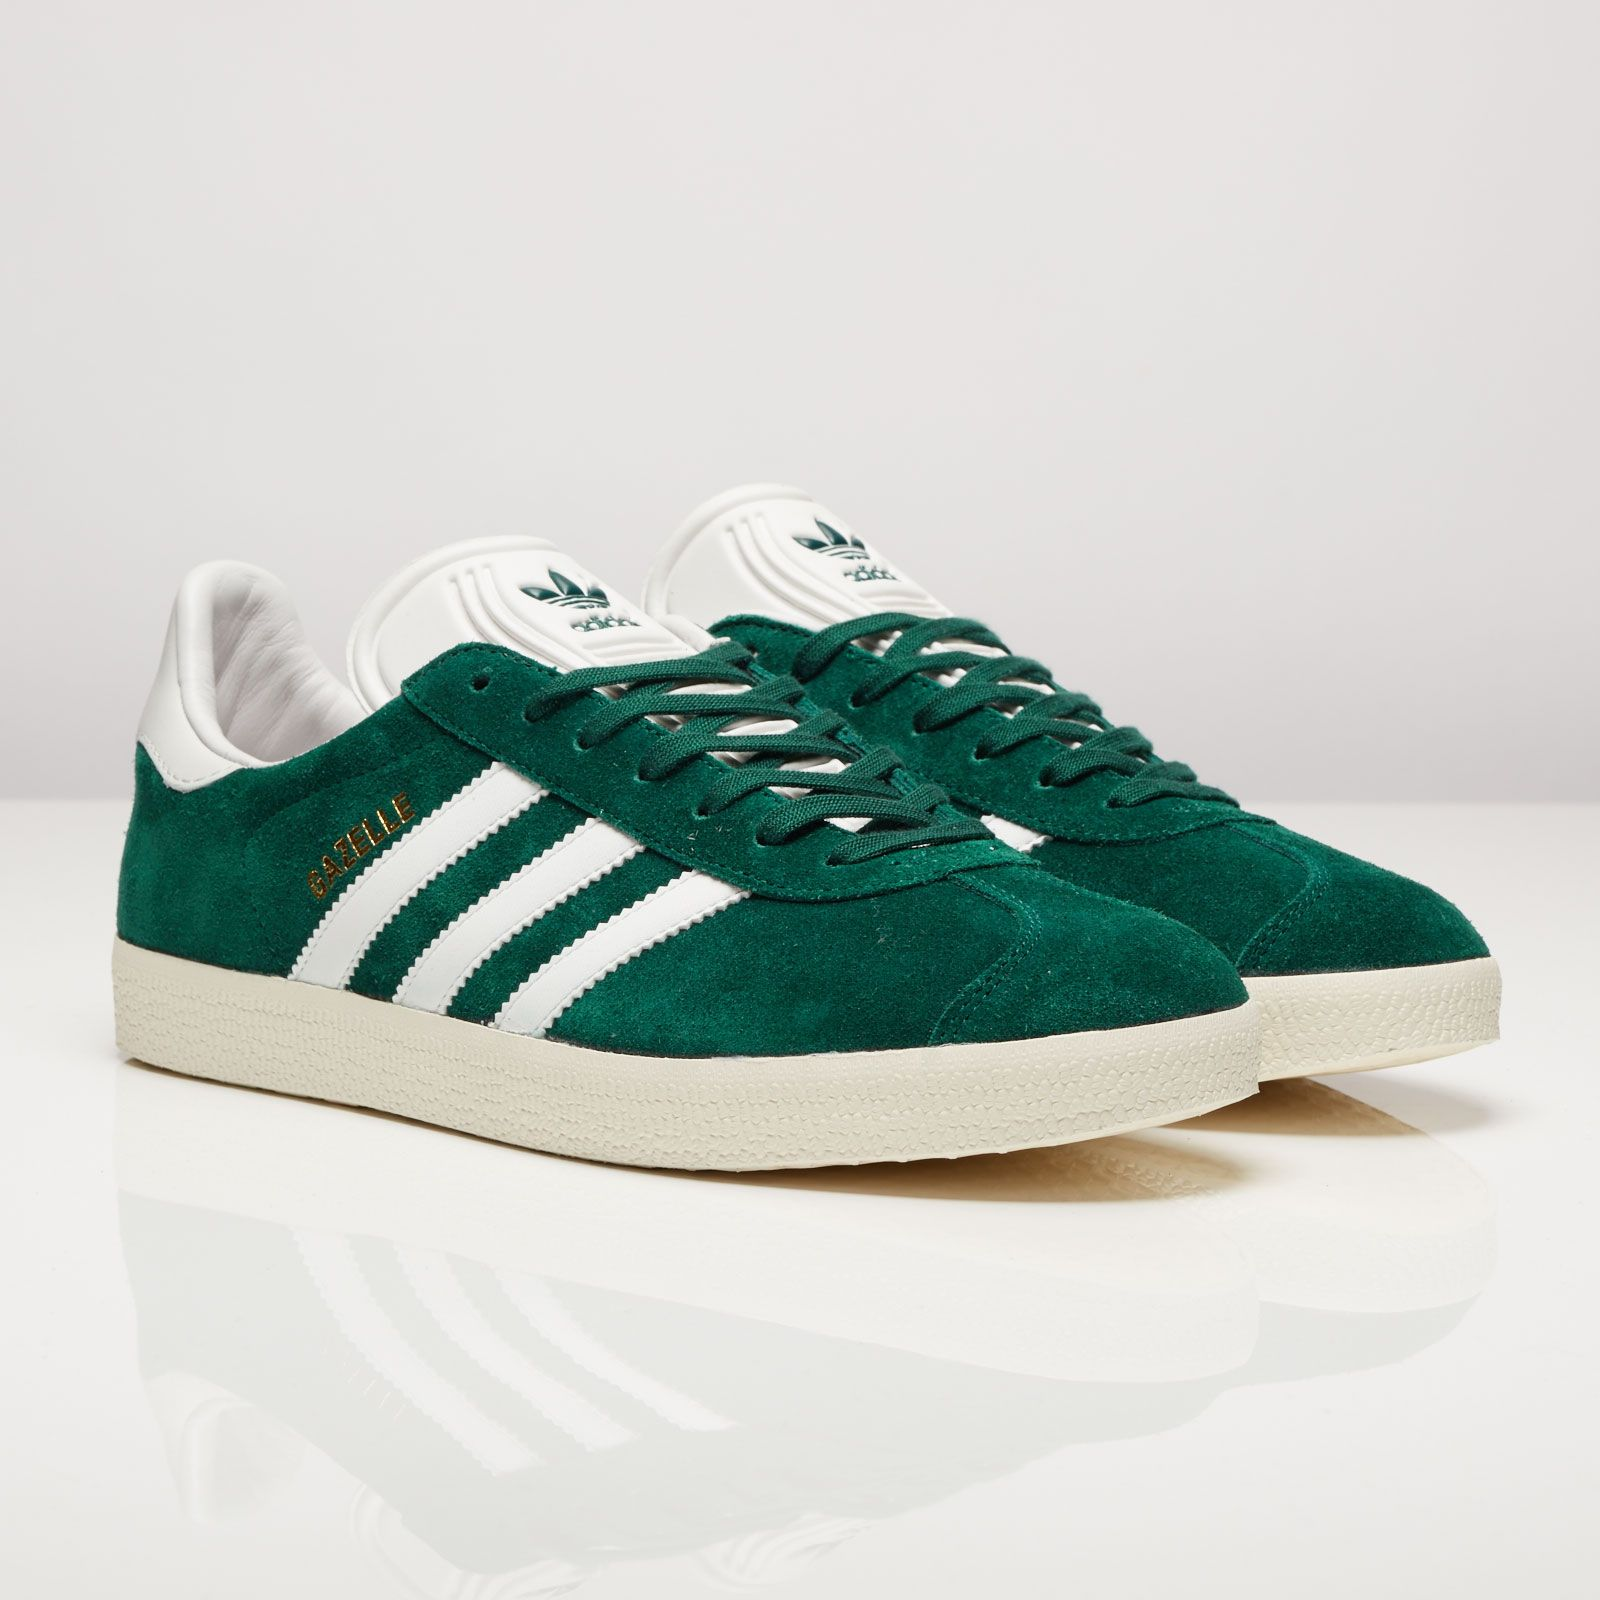 reputable site d577a 8efa1 adidas Gazelle. Green colorway is most classic. Great warm weather shoe,  although limited versatility.